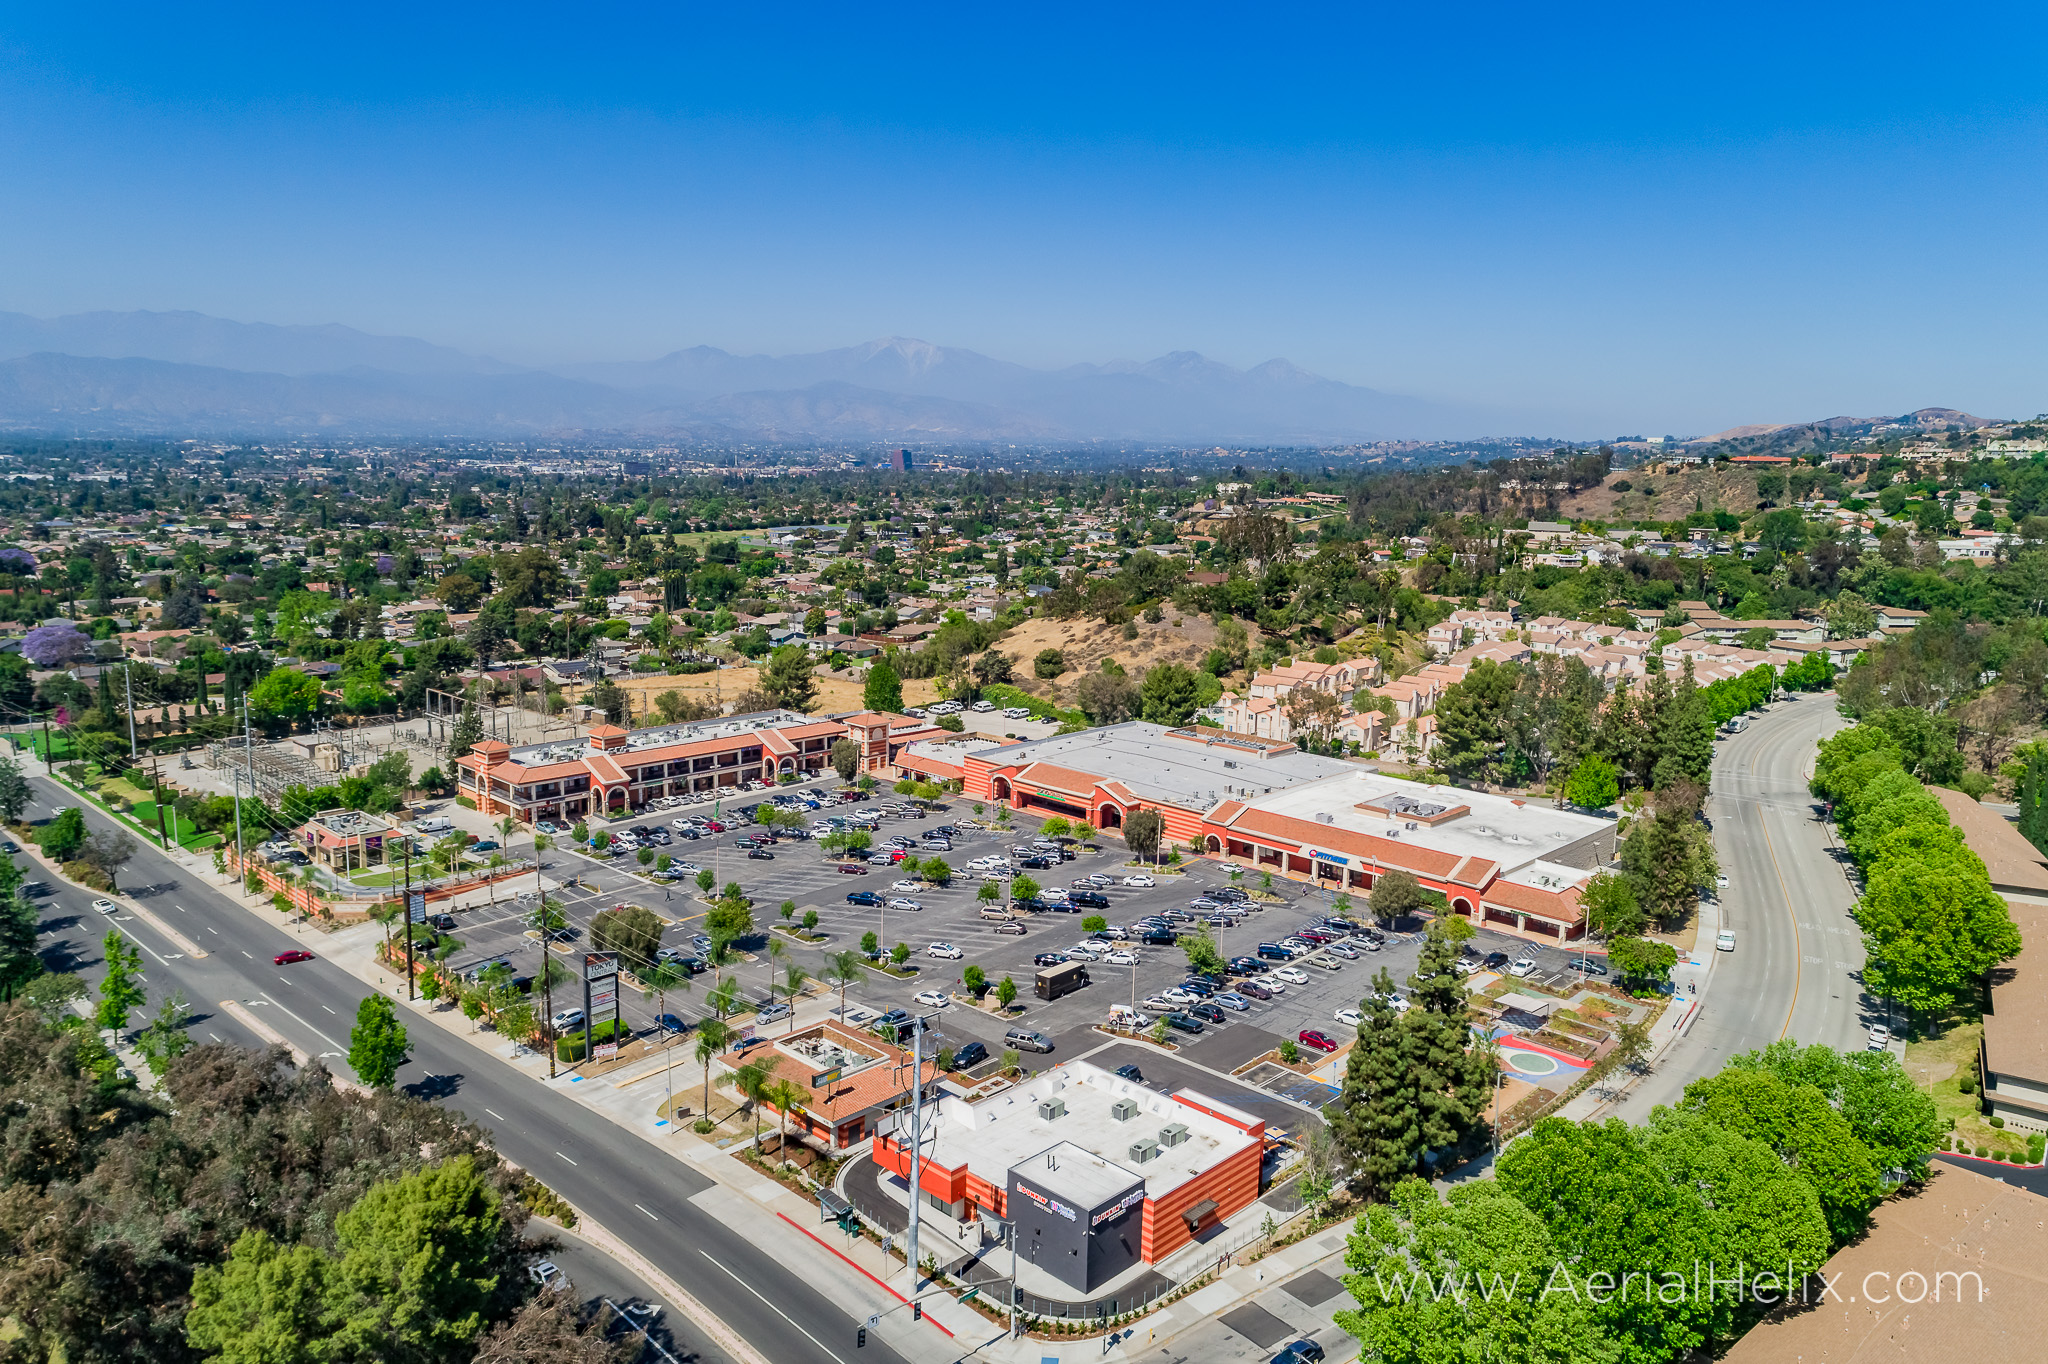 South Hills Plaza Aerial-4.jpg